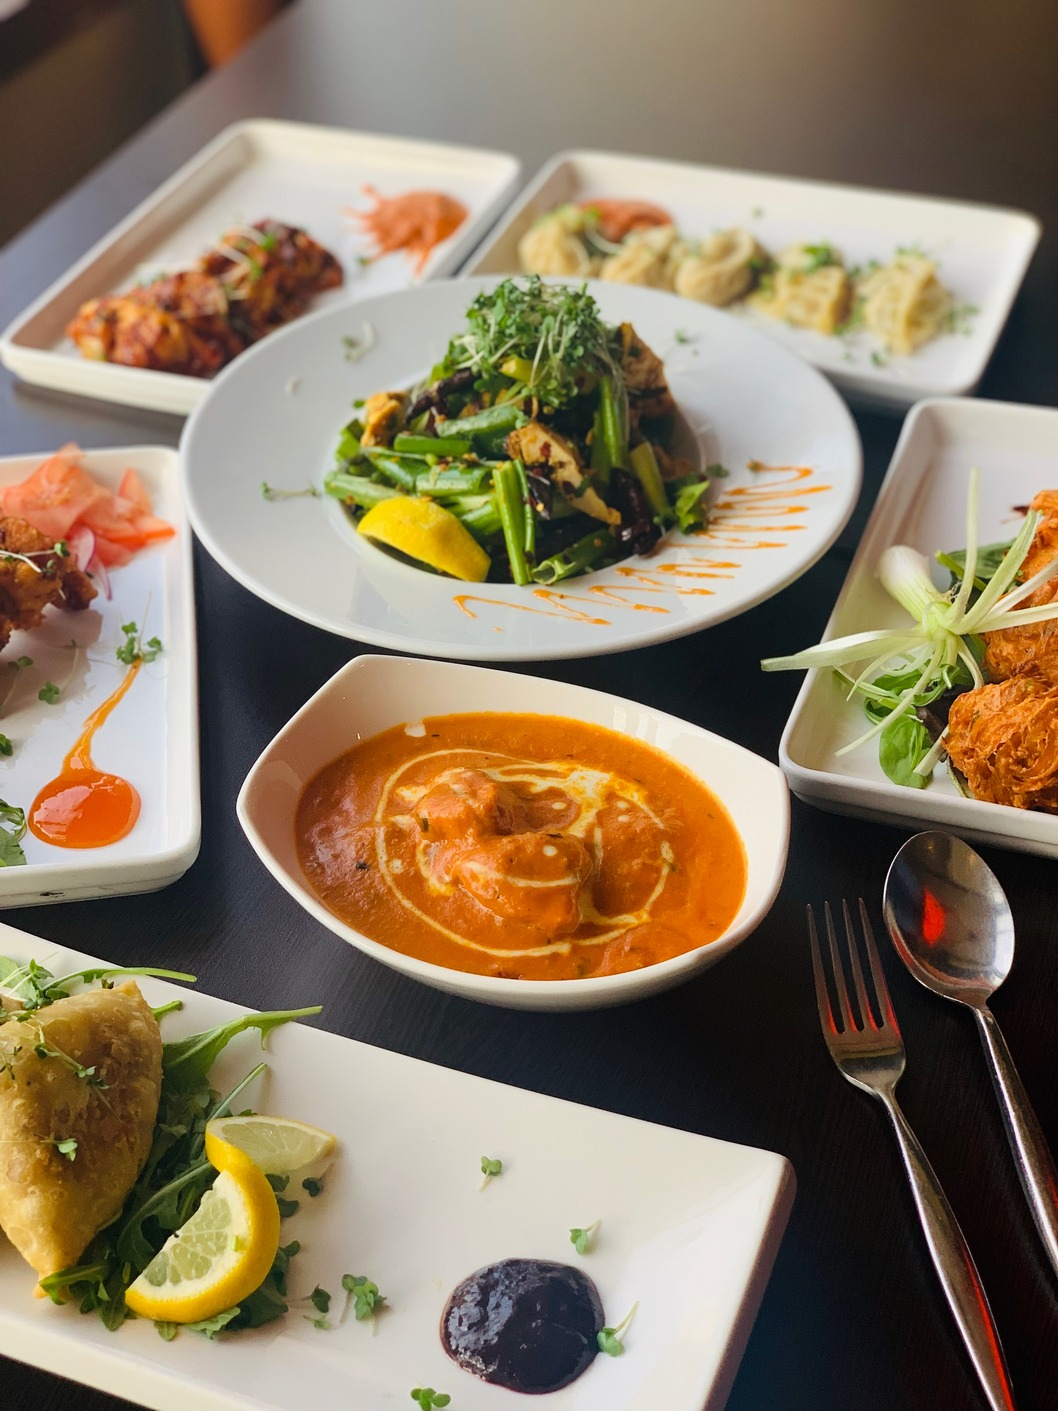 Gallery Image for Panas Gurkha Restaurant an Indian & Nepalese Restaurant & Takeaway in South East London